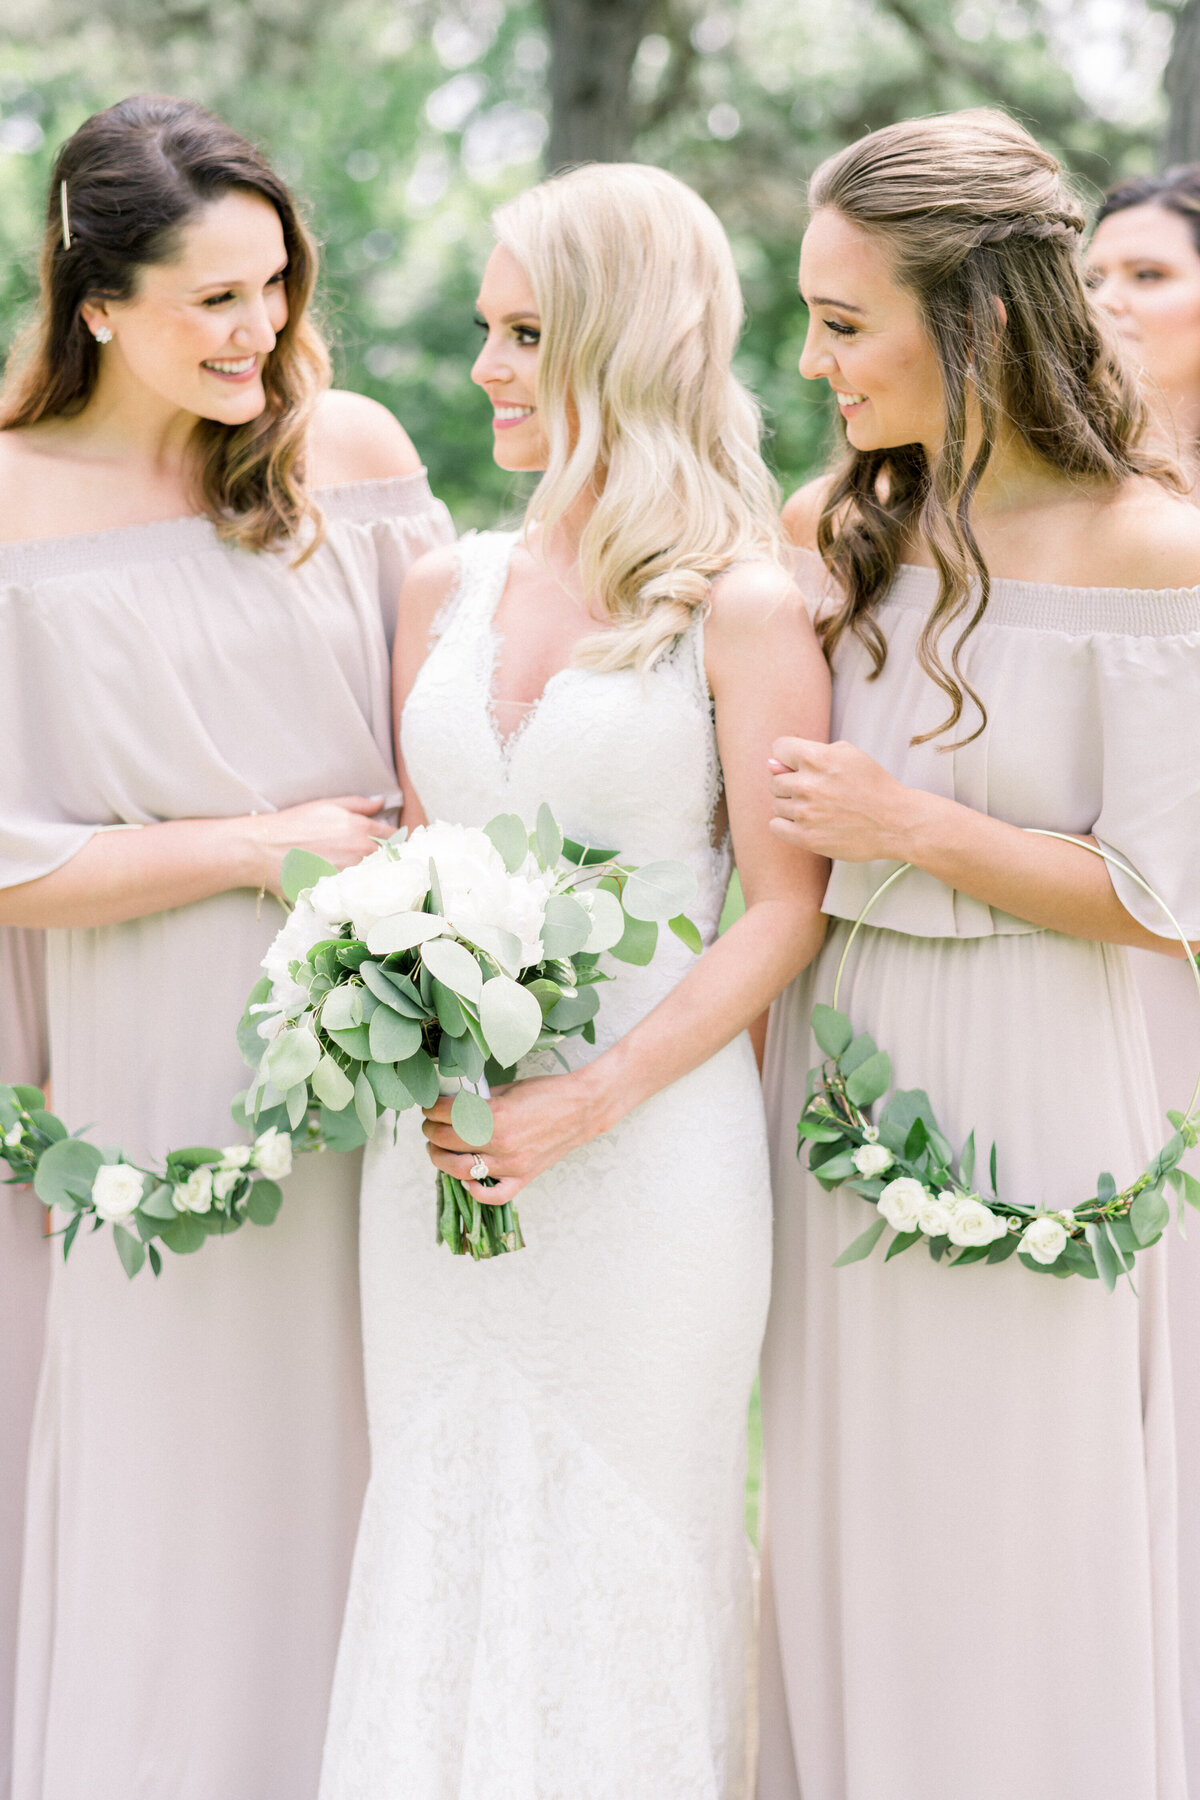 Minnesota wedding photographer, Minneapolis wedding photographer, Minnesota luxury photographer, minnesota light and airy photographer, minnesota light and airy wedding photographer, bridesmaid photos